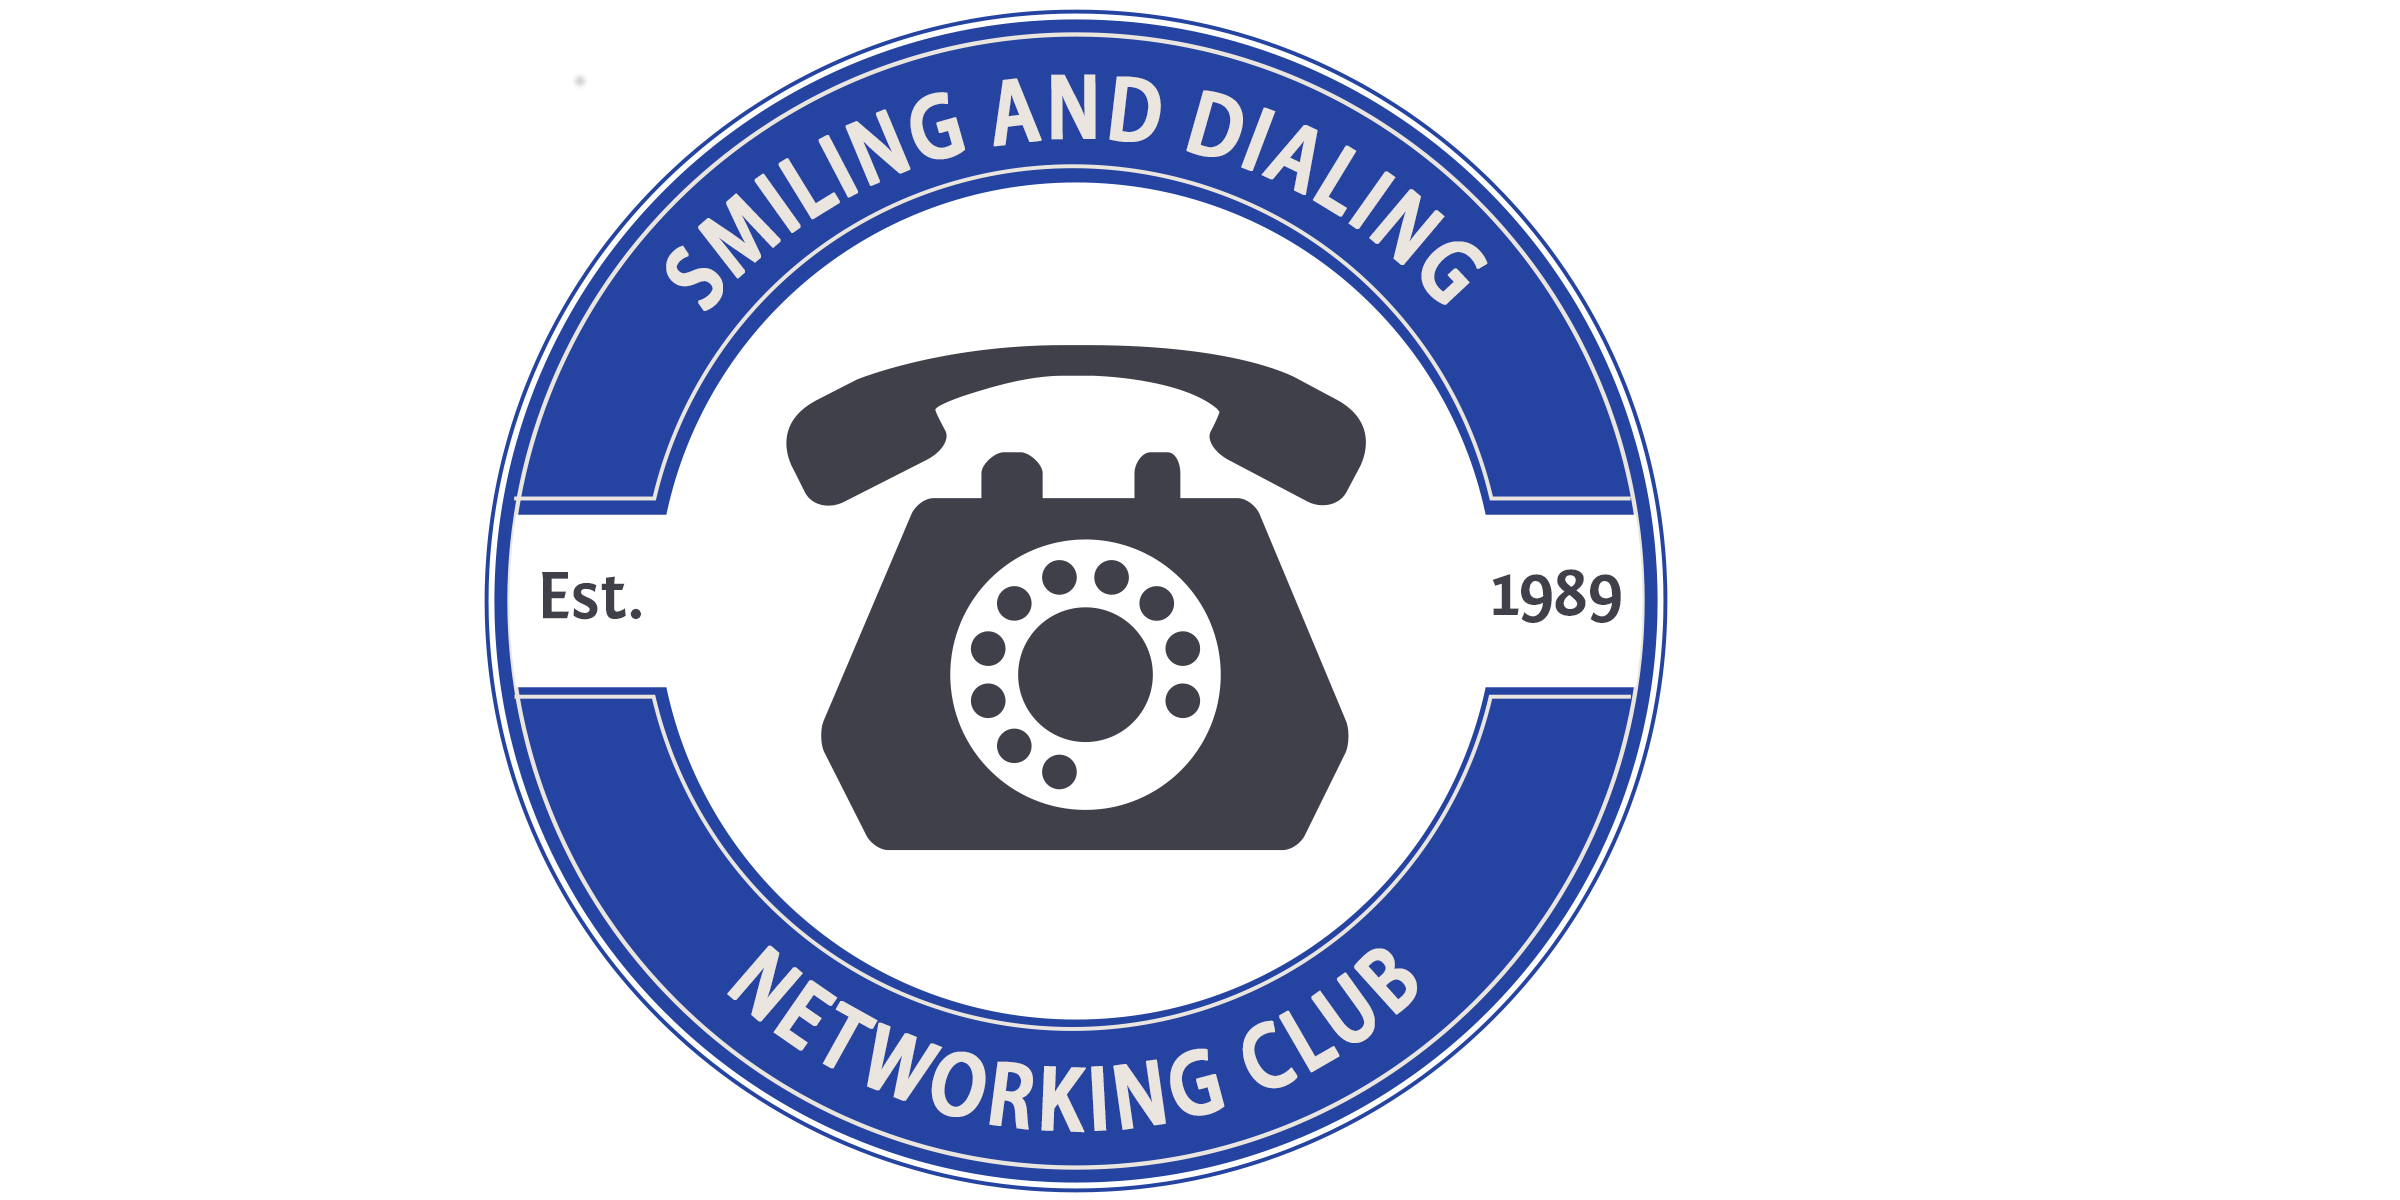 career networking by smiling dialing northland center career networking by smiling dialing